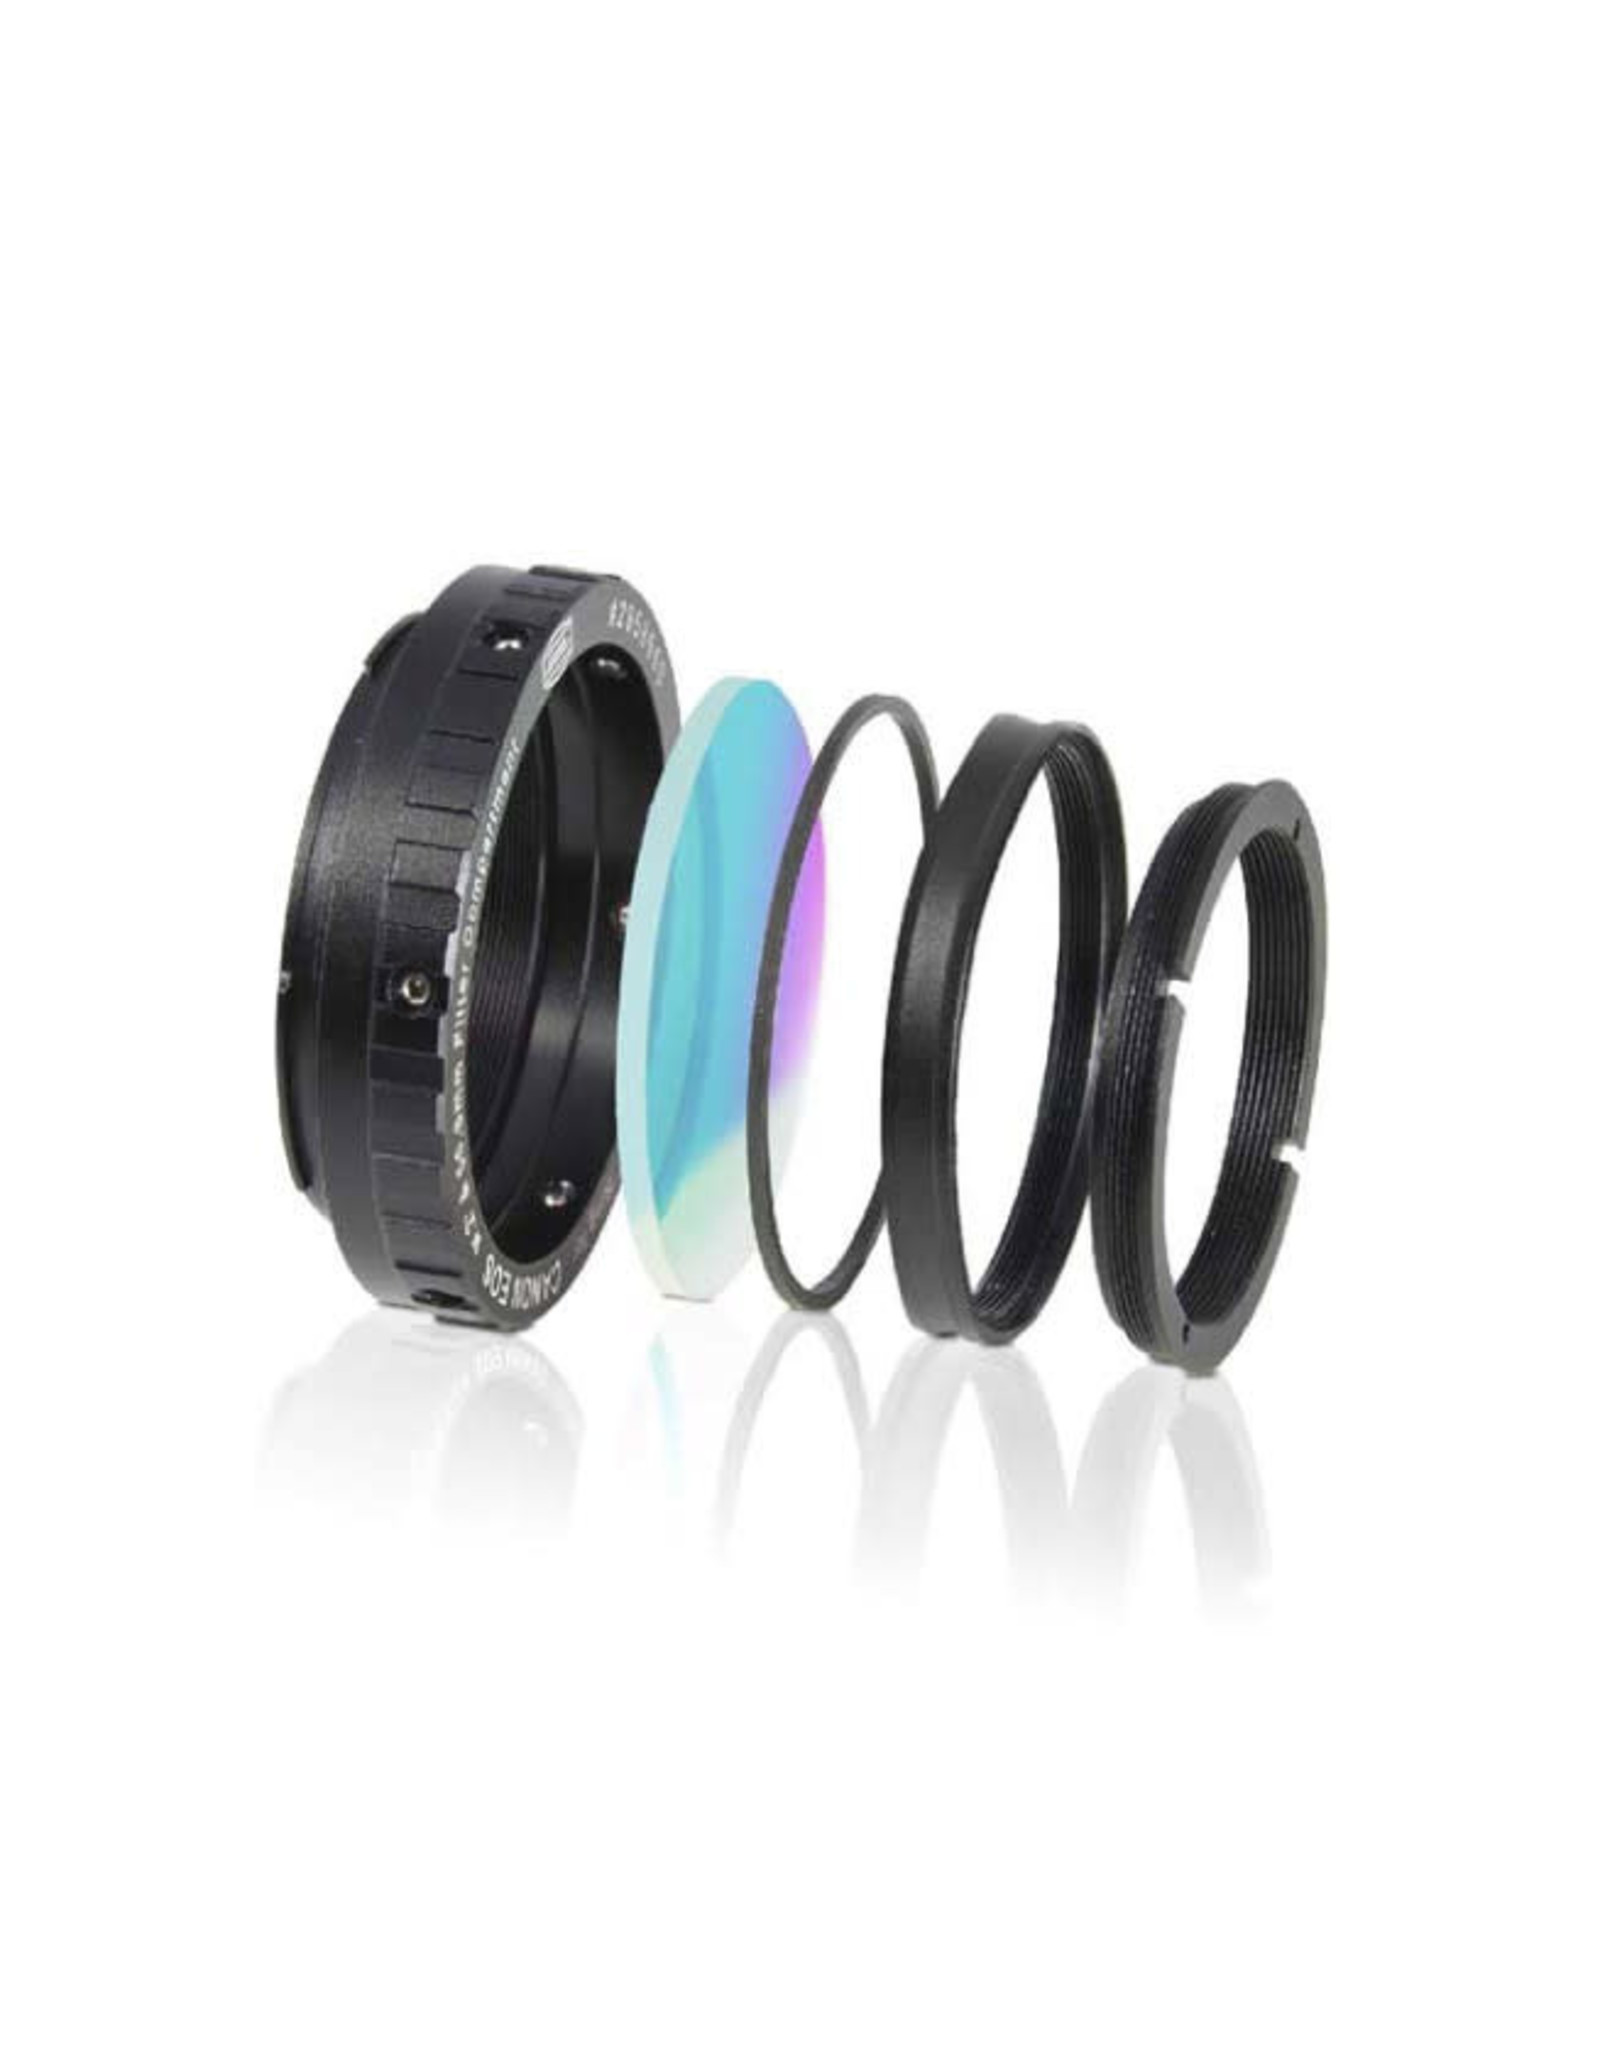 Baader Planetarium Baader EOS Protective Wide T-Ring with 7nm H-Alpha Filter